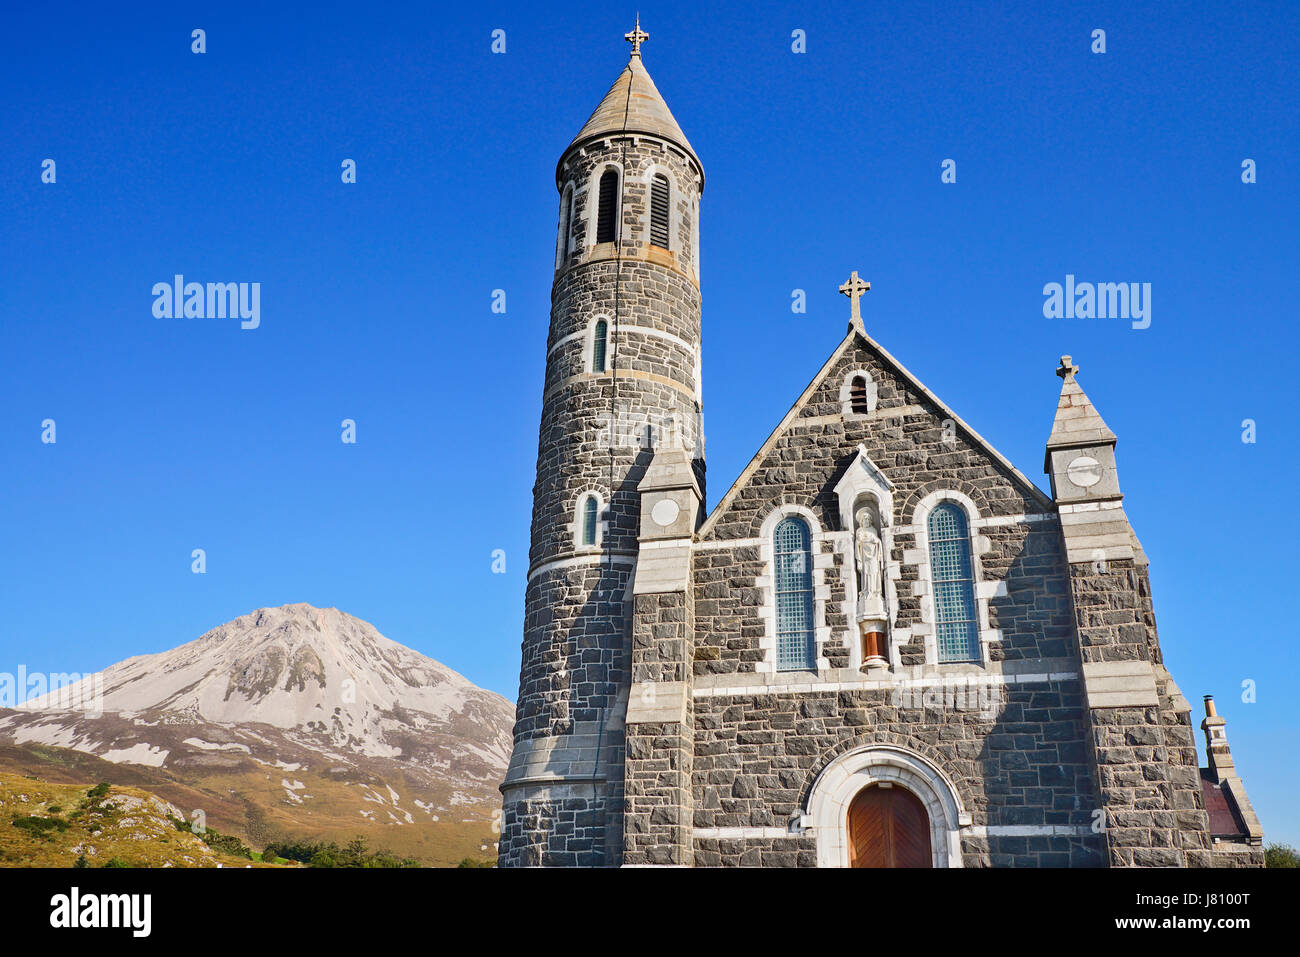 Ireland,County Donegal, Dunlewey,Church of the Sacred Heart with Mount Errigal in the background. - Stock Image